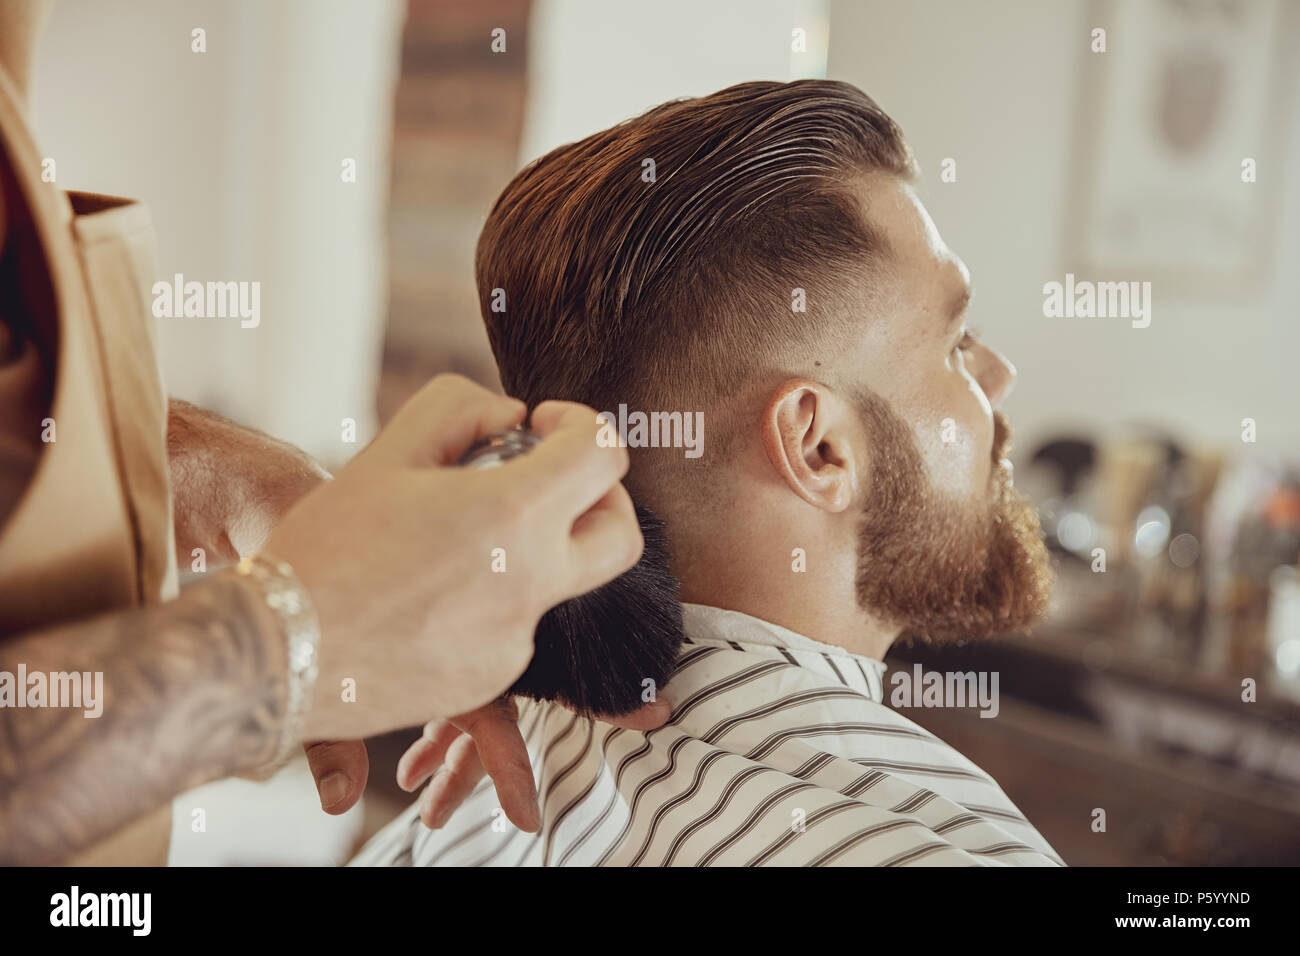 Barber shakes hair off from the client's neck.  Photo in vintage style - Stock Image